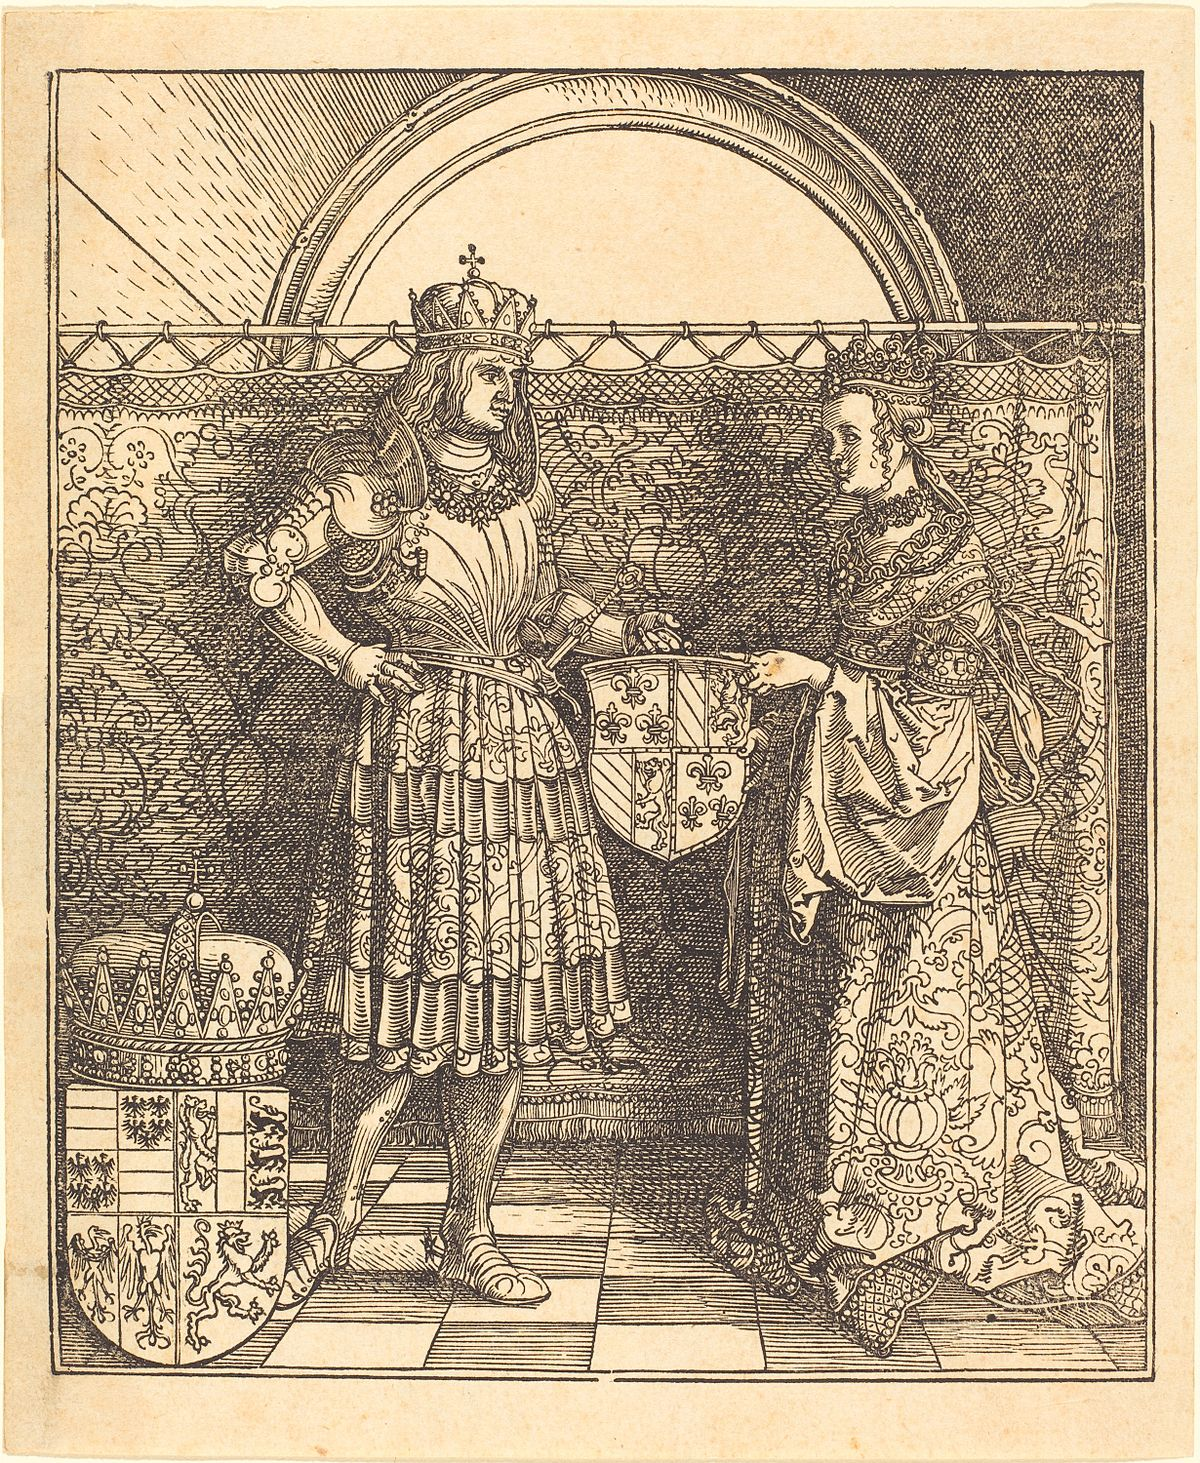 Albrecht Dürer - The Betrothal of Maximilian with Mary of Burgundy (NGA 1978.106.1).jpg